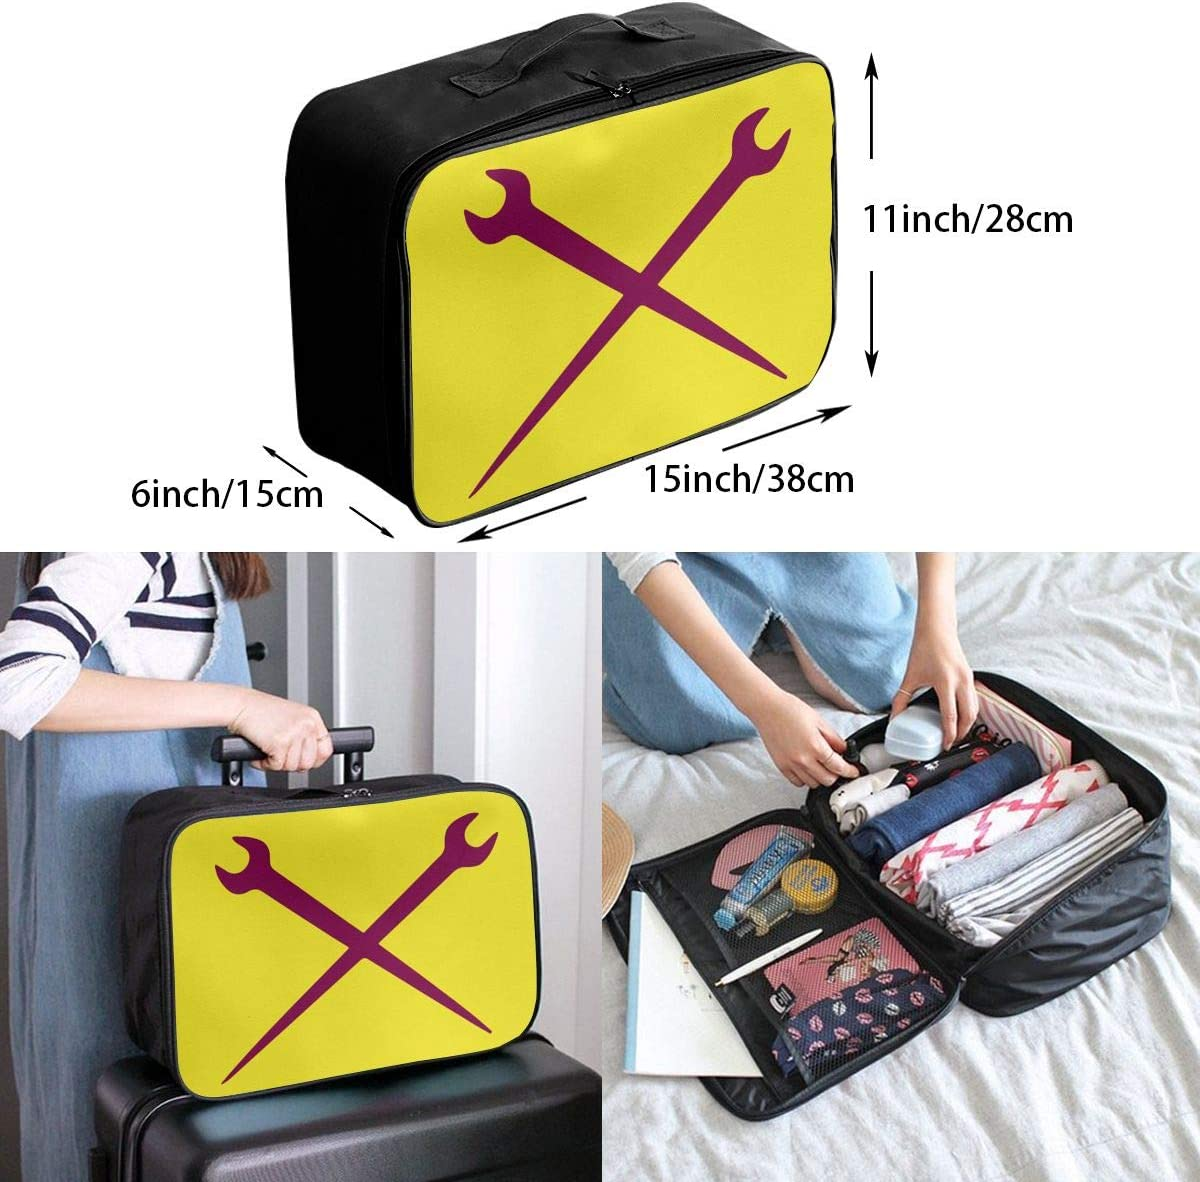 Ironworker Crossed Tools Carry Lightweight Large Capacity Portable Outdoor Luggage Trolley Bag